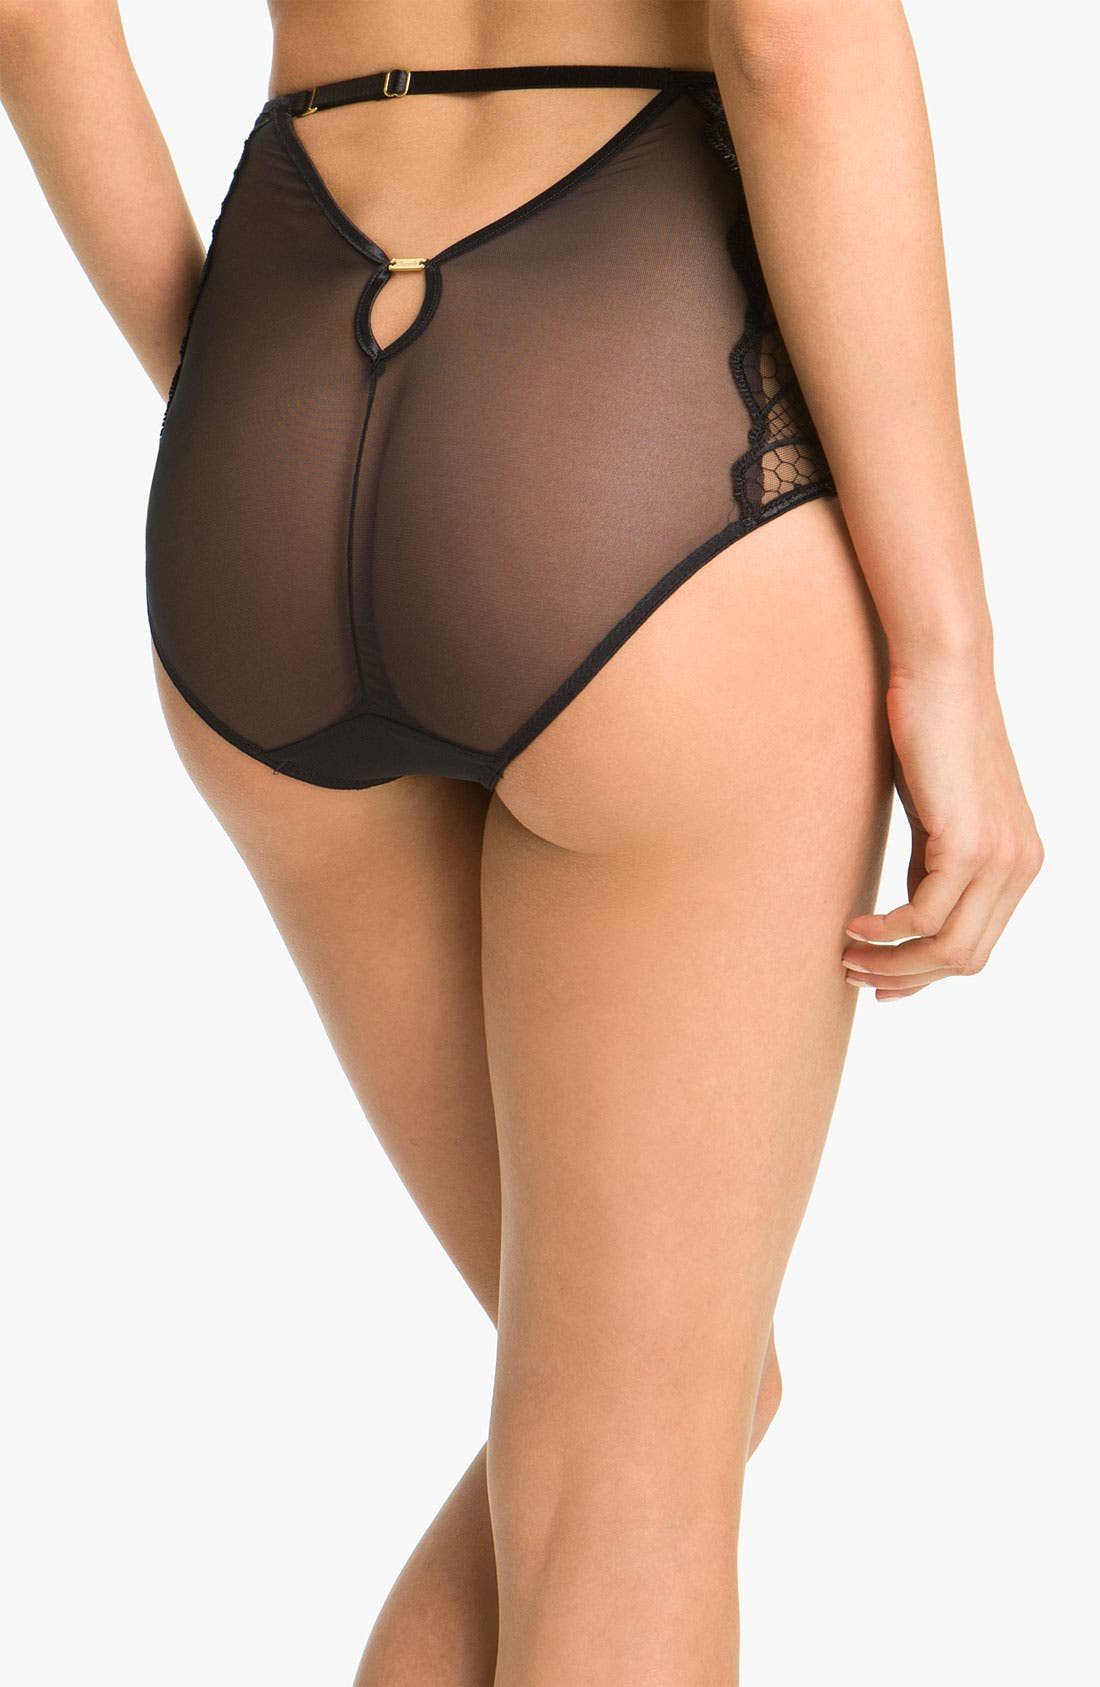 Alternate Image 2  - Chantelle Intimates 'Hypnotique' High Waist Briefs